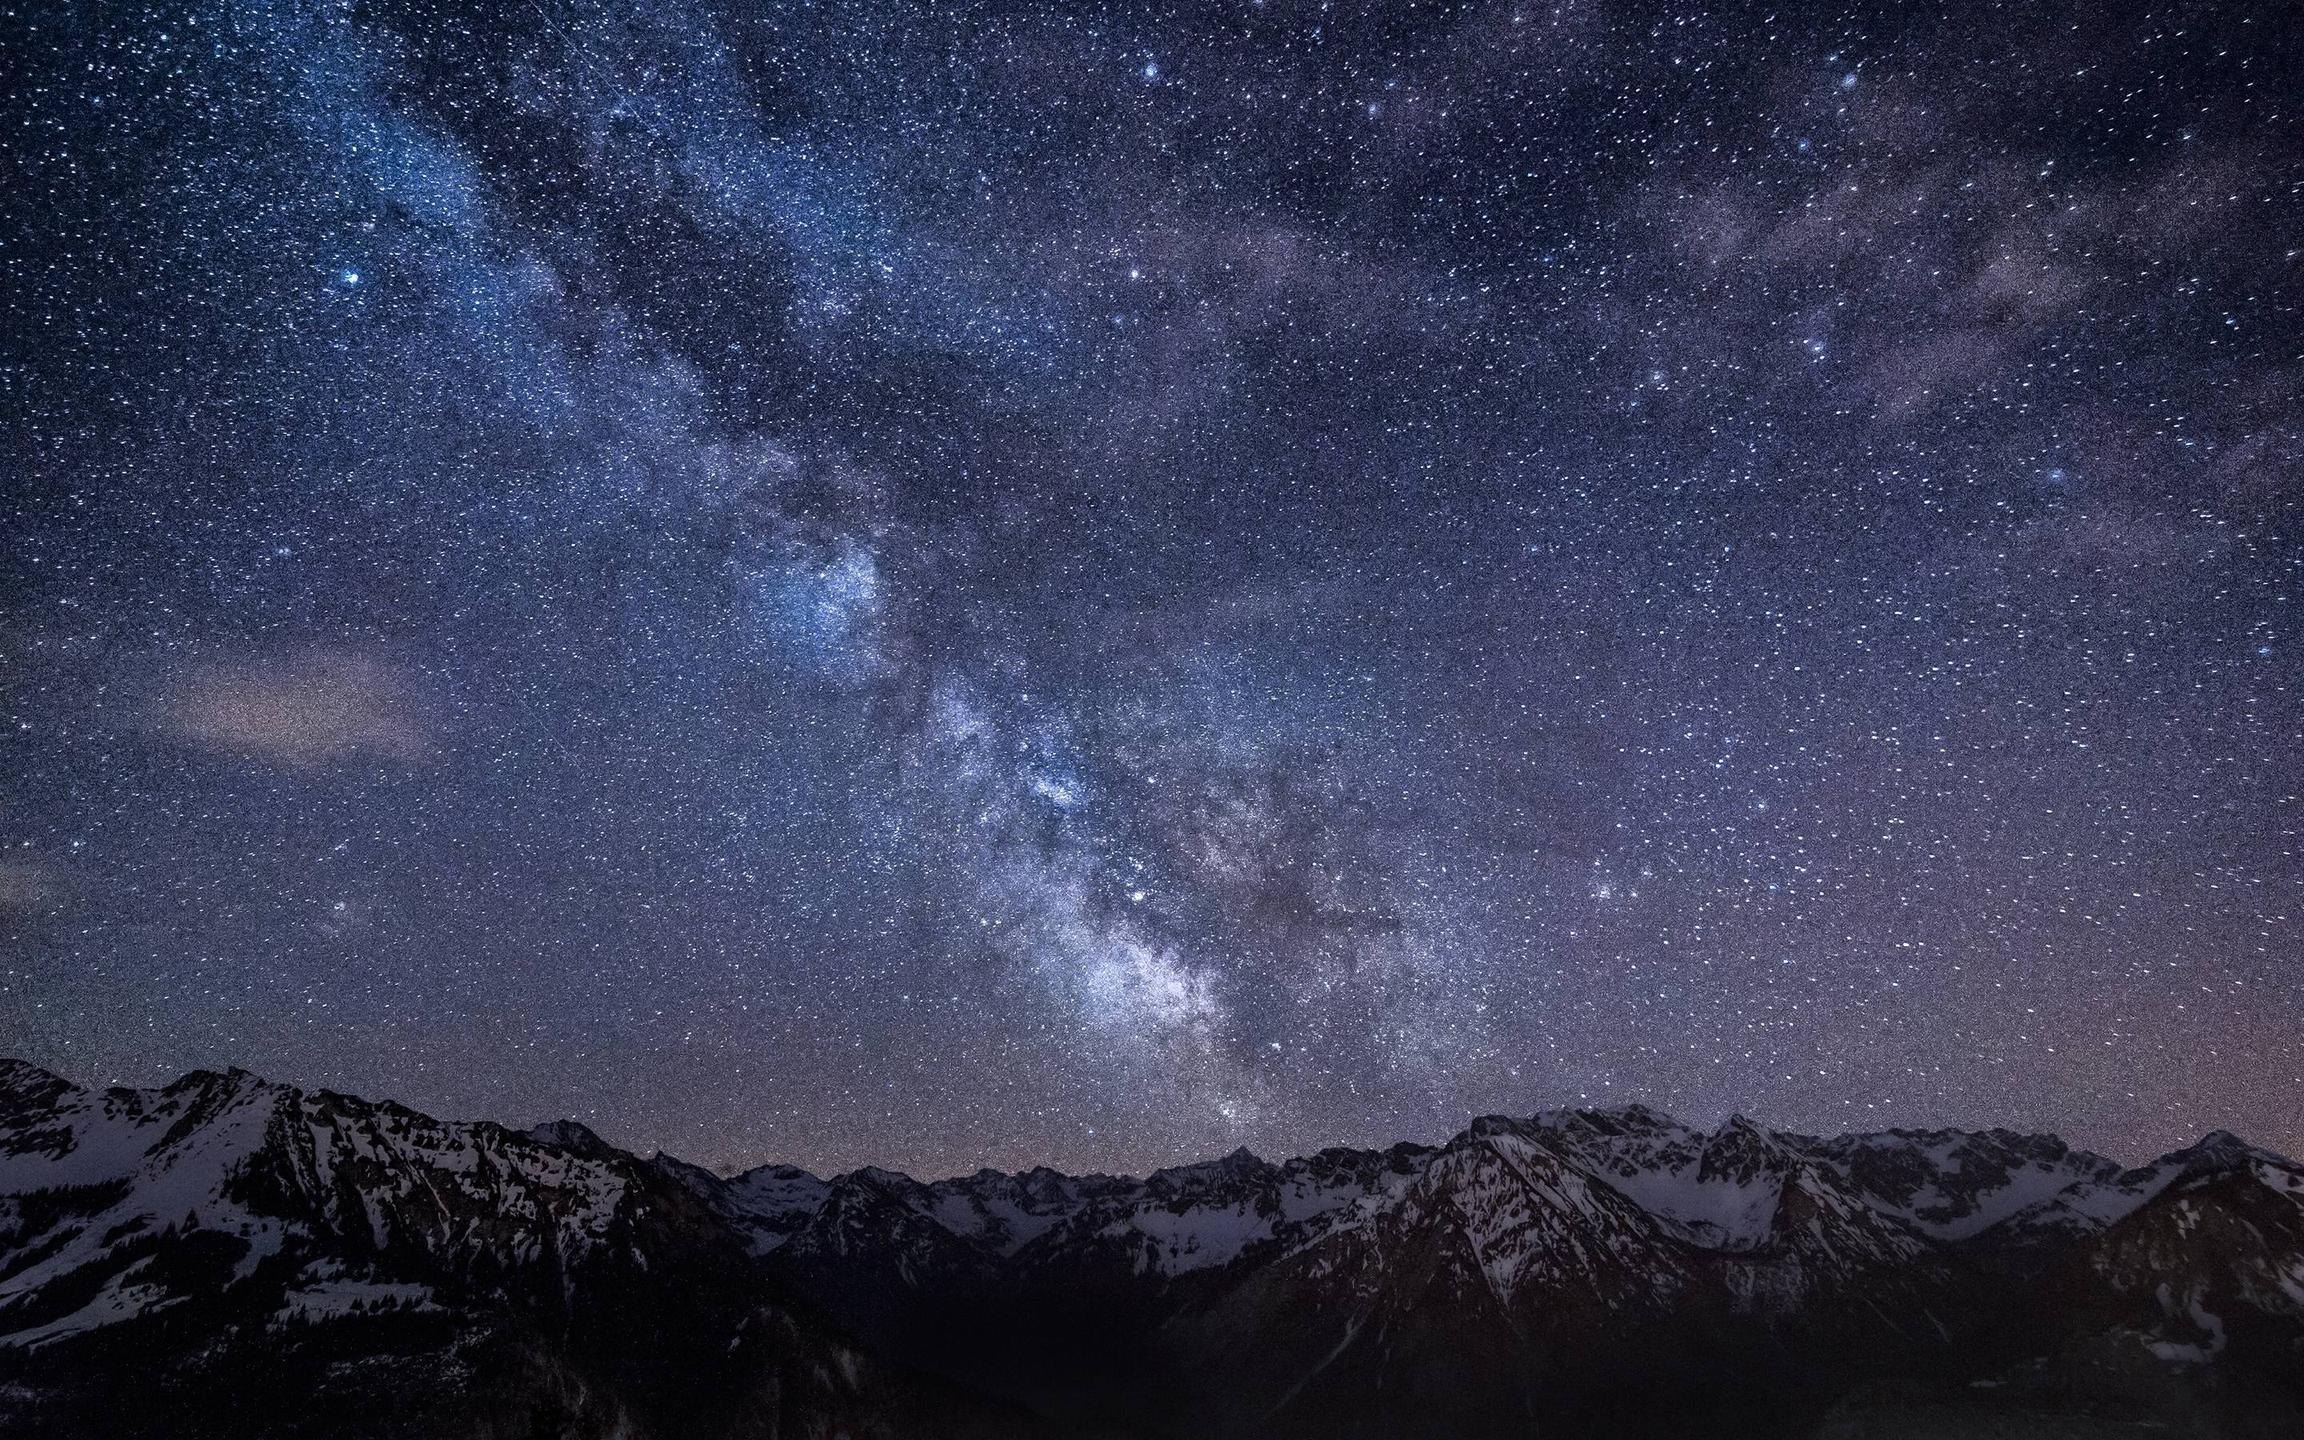 Wallpaper night sky stars night Milky Way mountains land